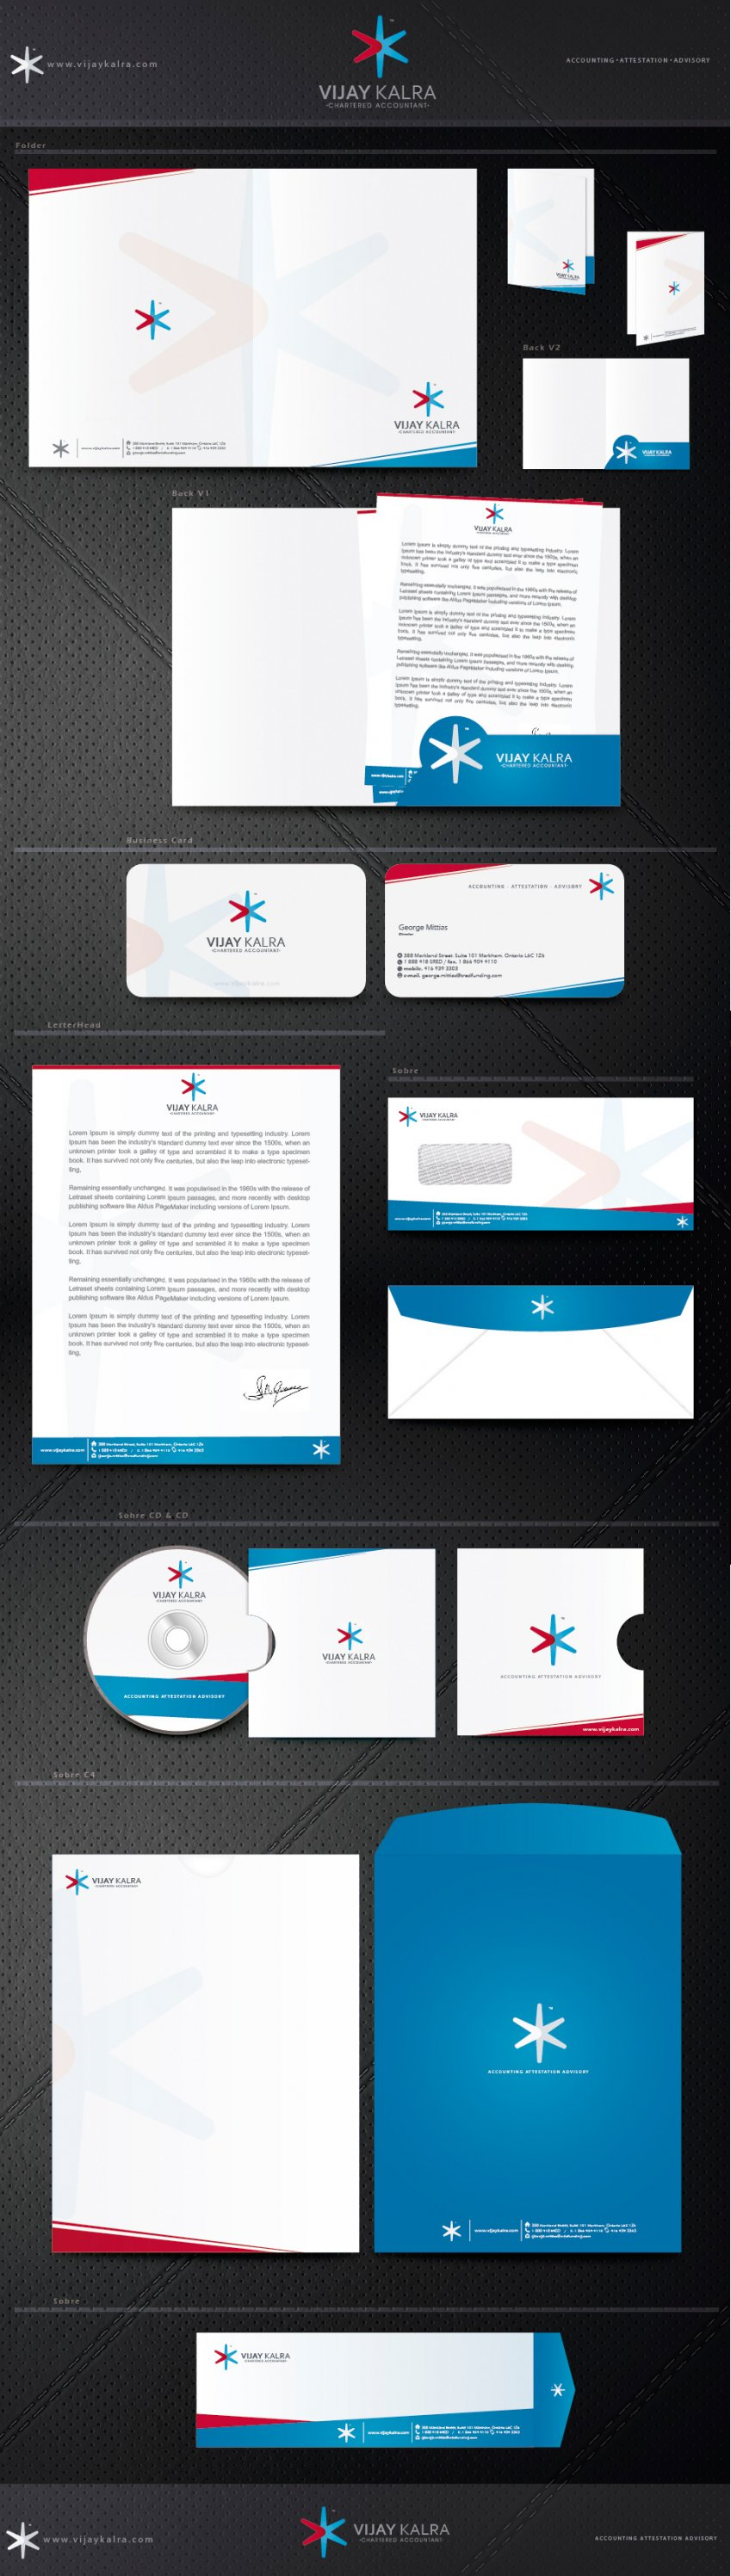 |VIJAYKALRA| stationery full v2